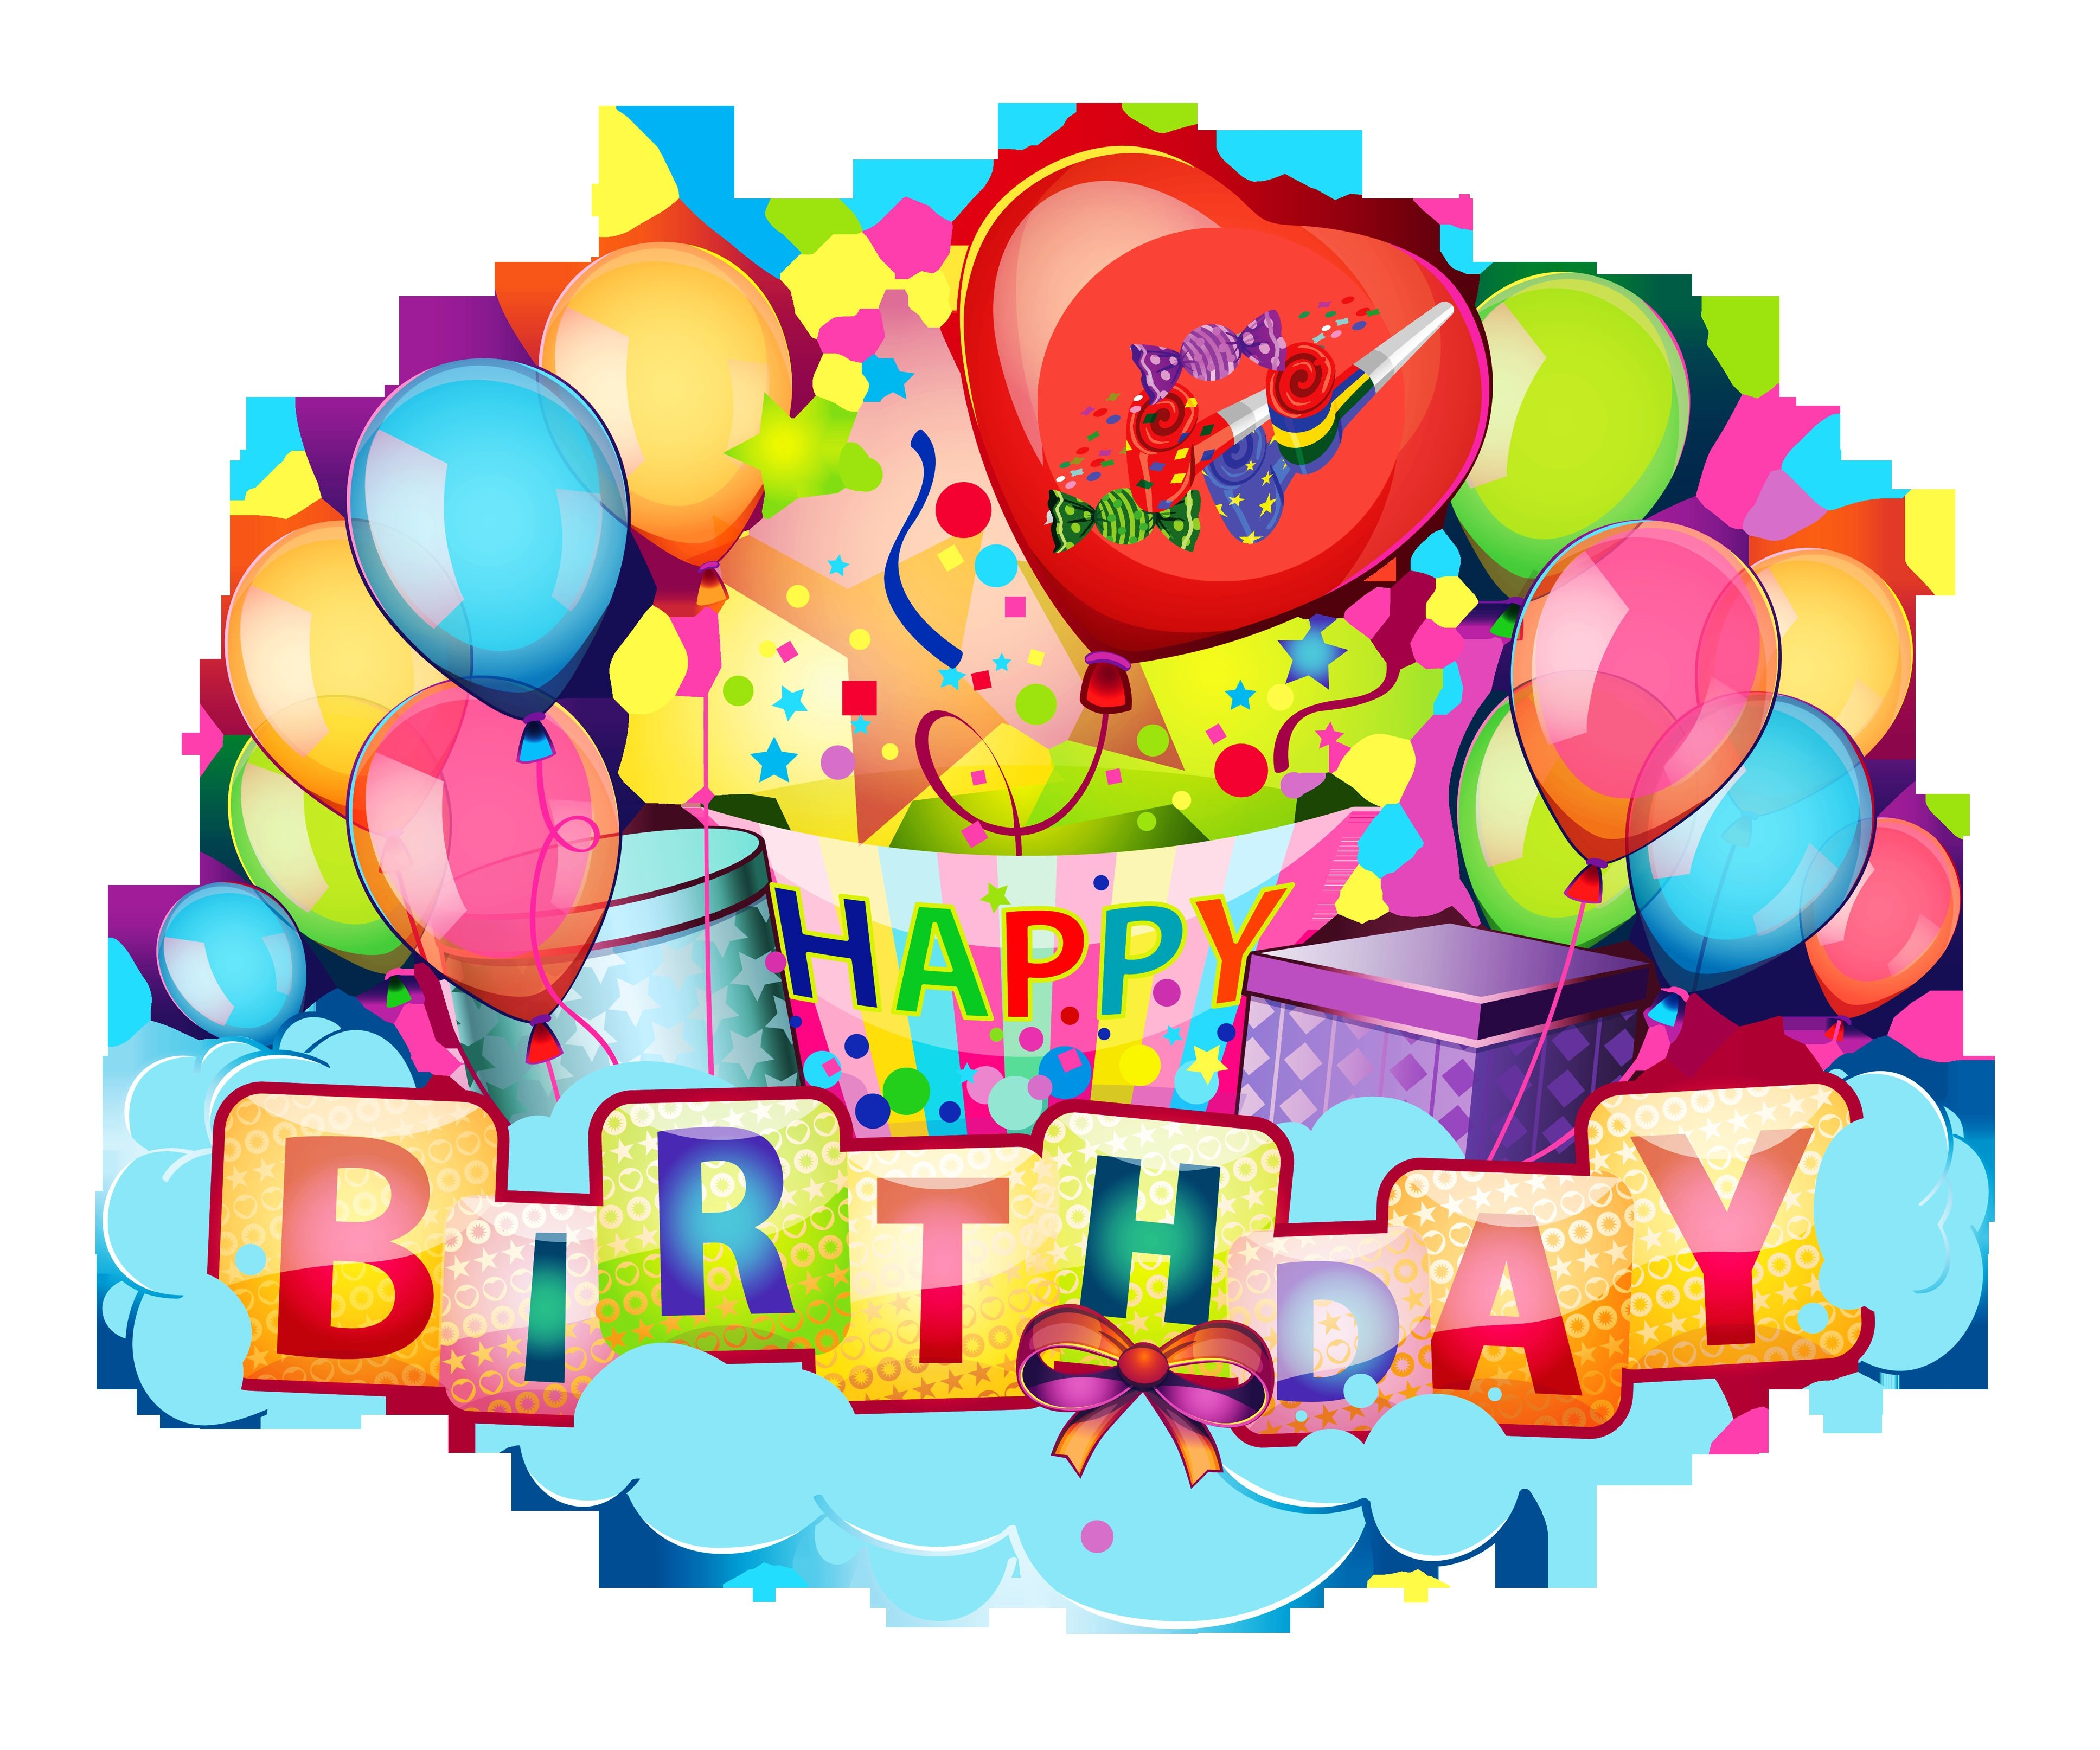 Happy birthday clipart for facebook – Gclipart.com clip art library stock